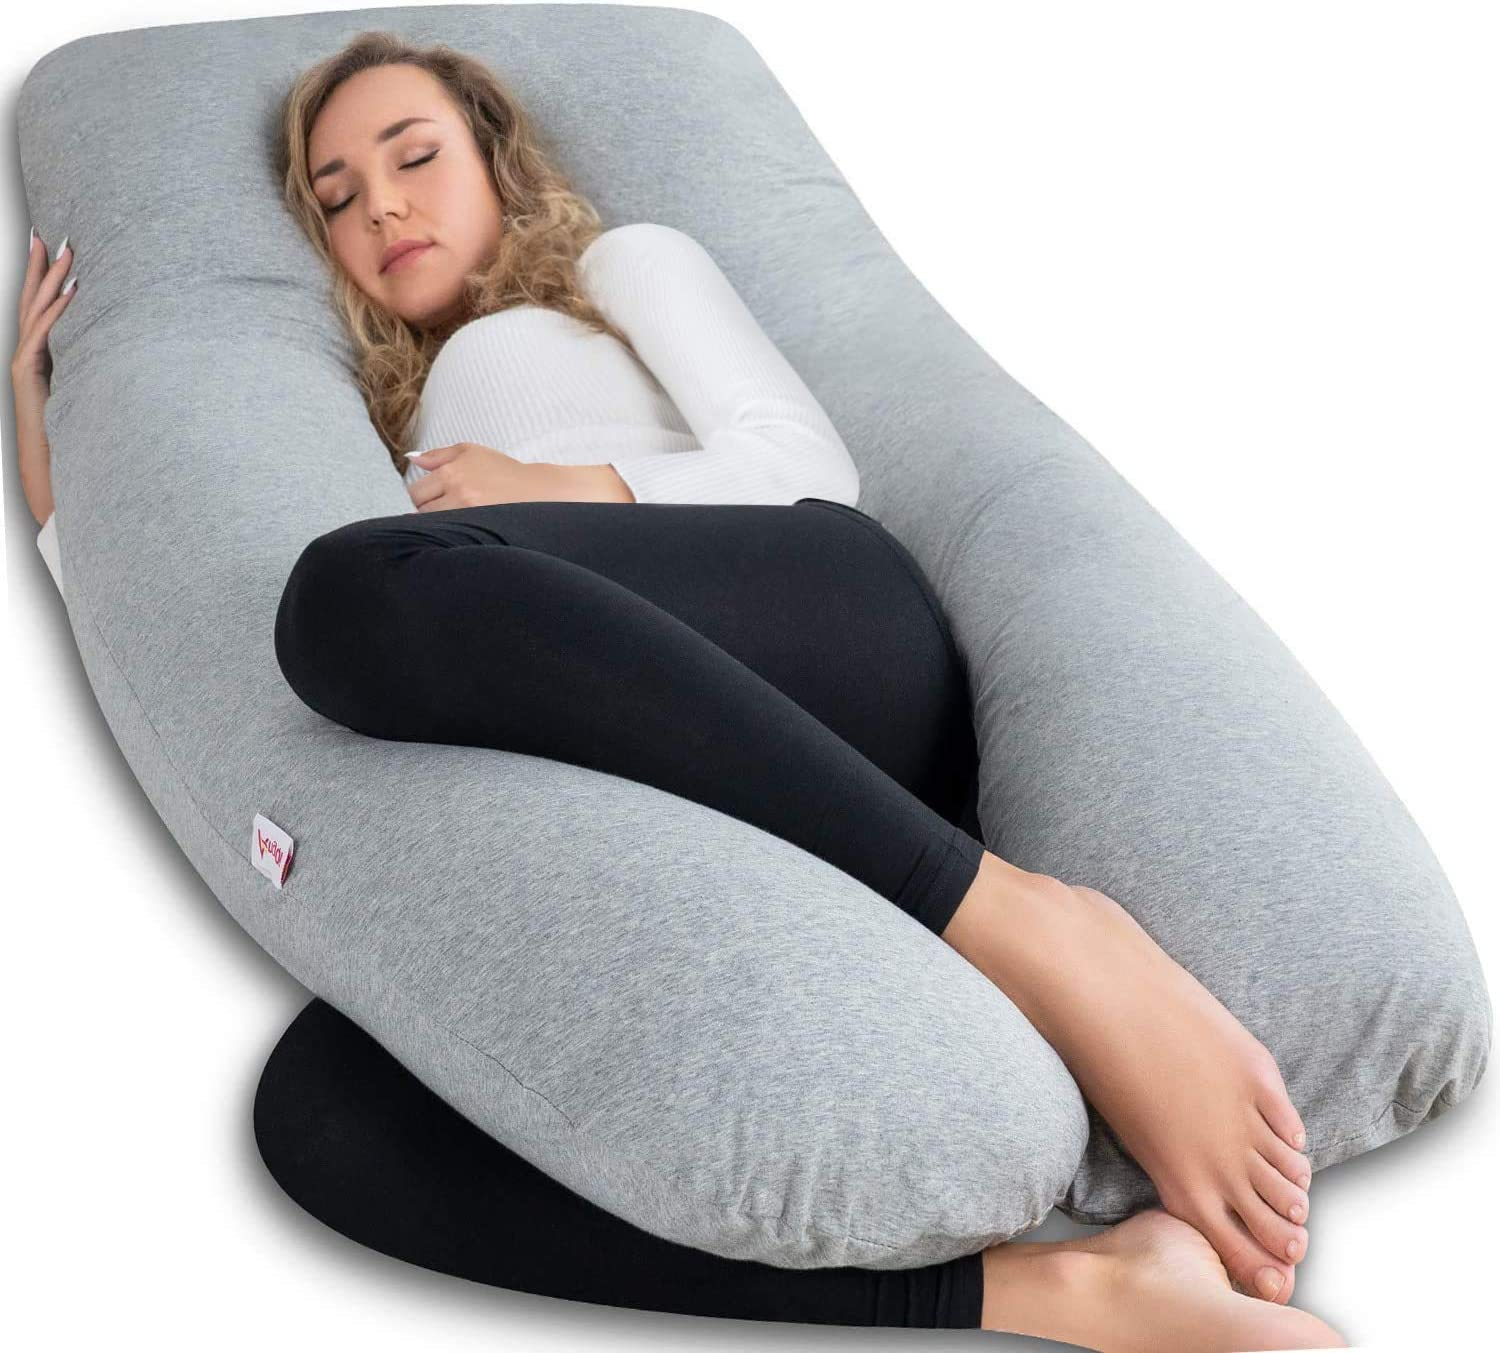 Amazon.com: AngQi Pregnancy Pillow with Jersey Cover, U Shaped